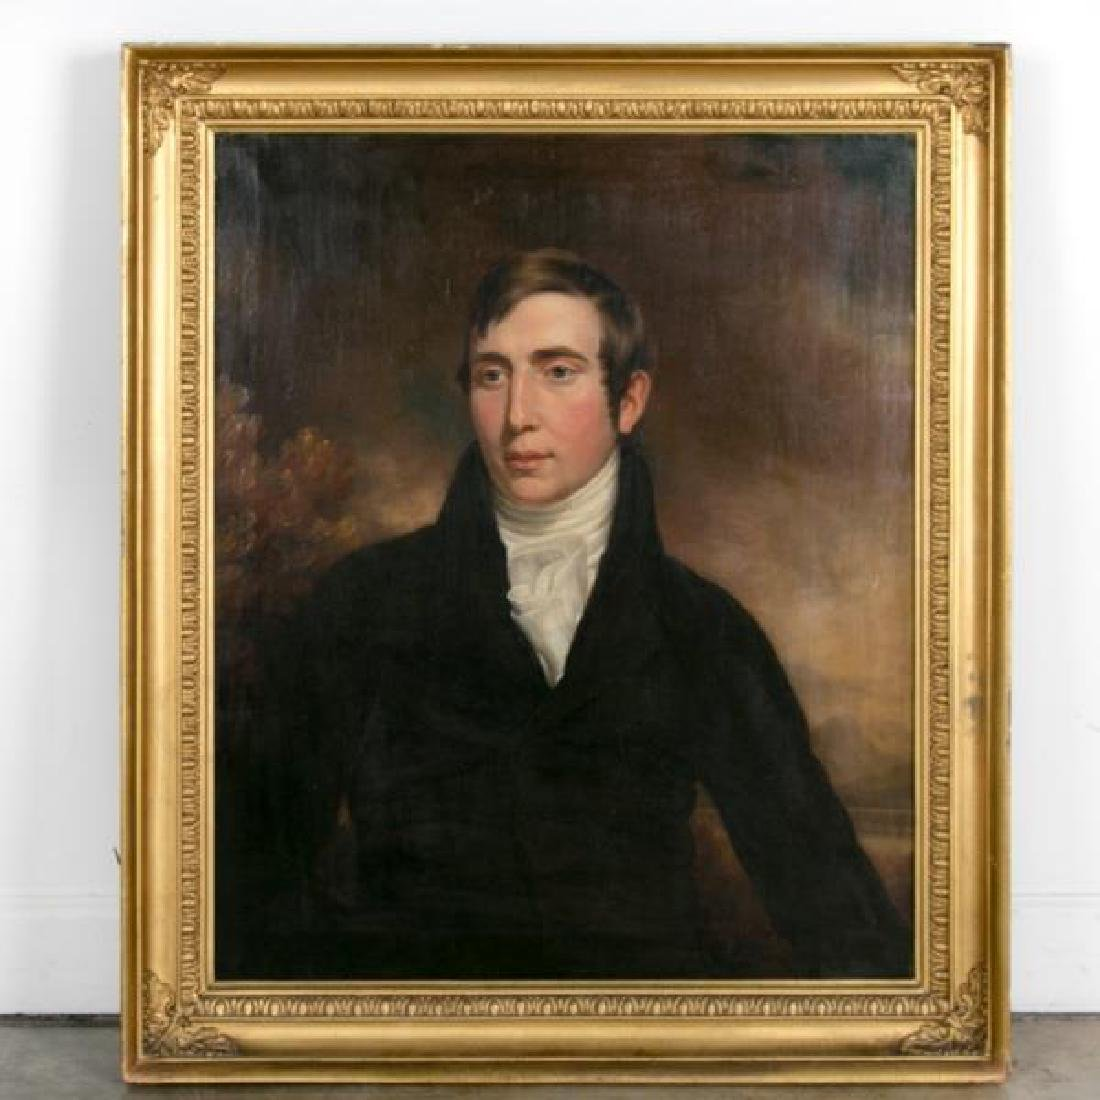 Scottish Portrait of Gentleman, Aitken Dott Frame